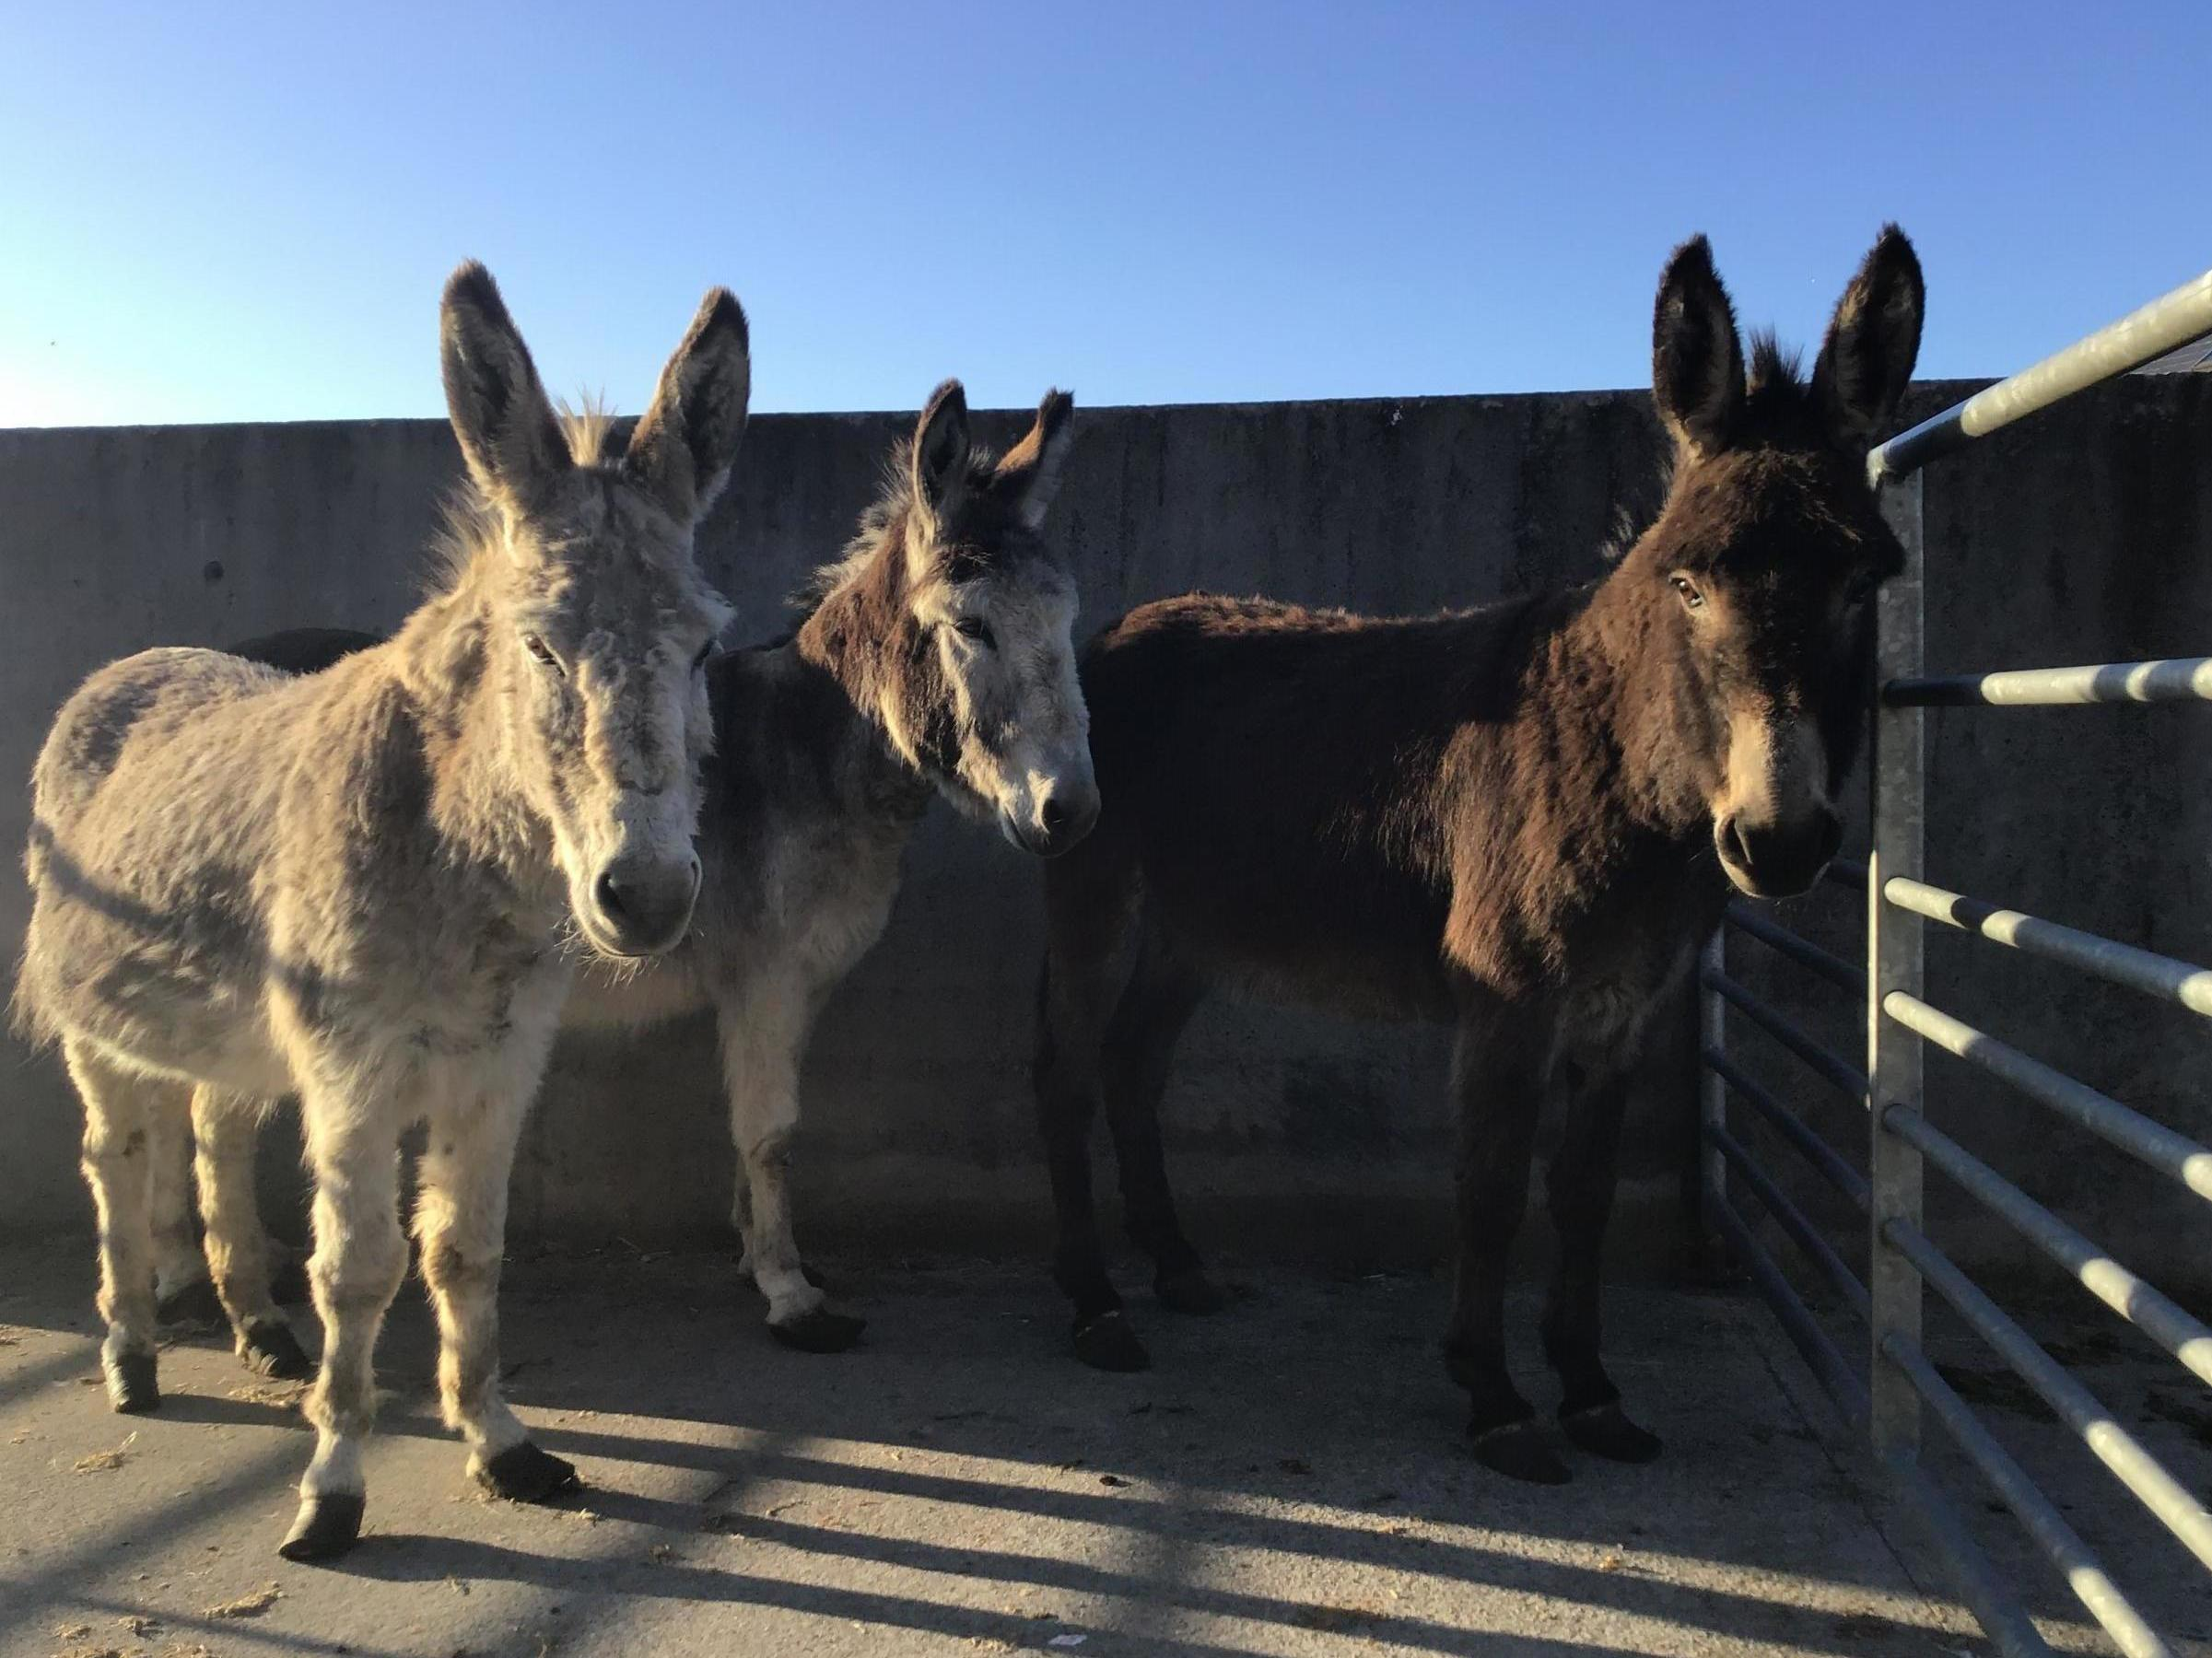 'Unprecedented situation:' Donkey sanctuary inundated with abandoned animals during lockdown